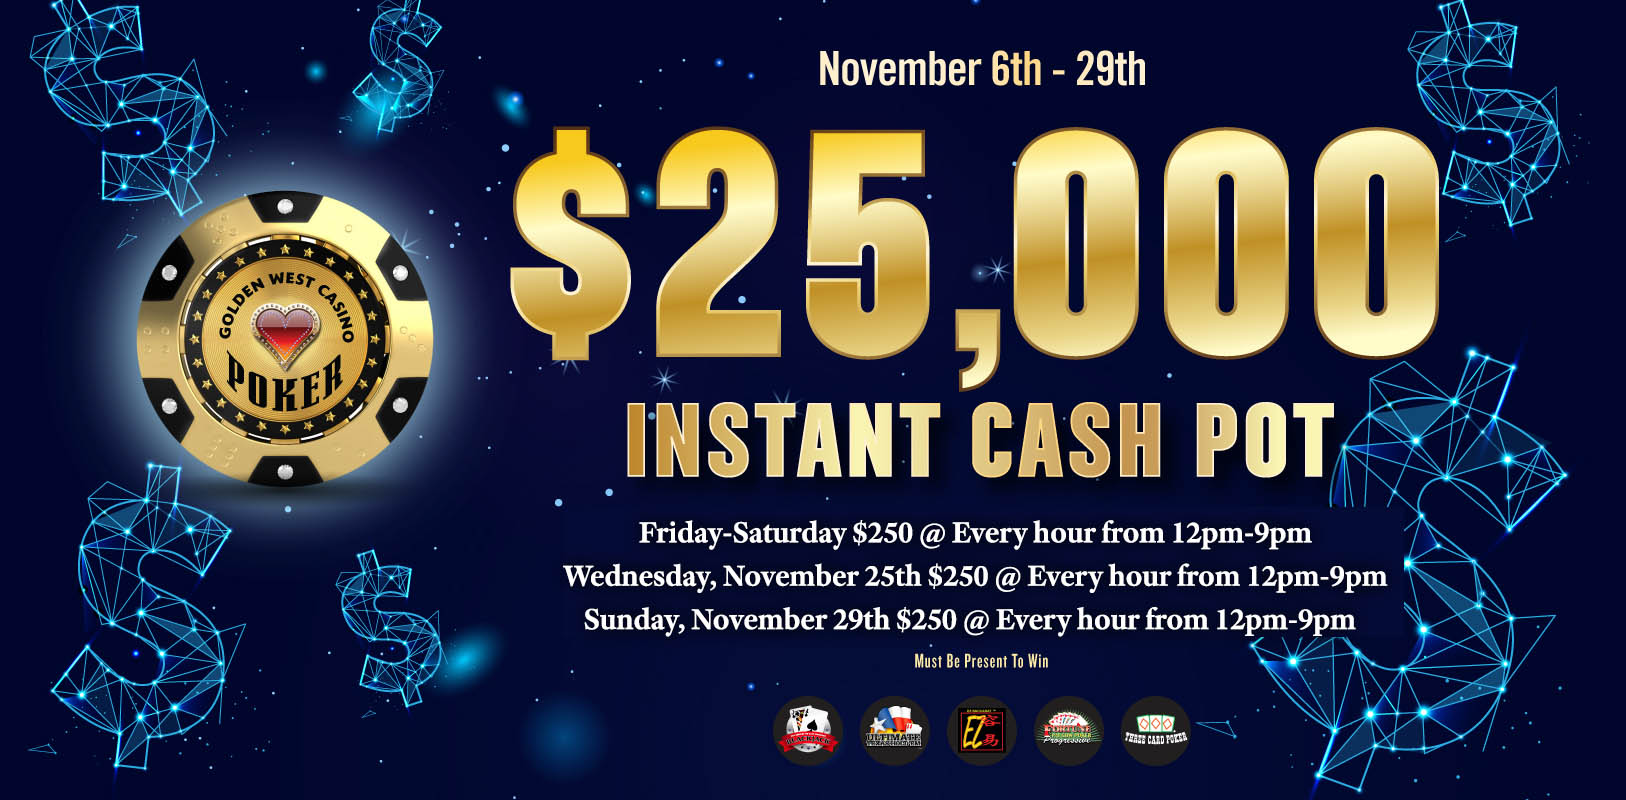 $25,000 Instant Cash Pot November 6th-29th Friday thru Saturday $250 at every hour from 12pm to 9pm. Wednesday November 25th $250 at every hour from 12pm to 9pm. Sunday November 29th $250 at every hour from 12pm to 9pm. Must be present to win.